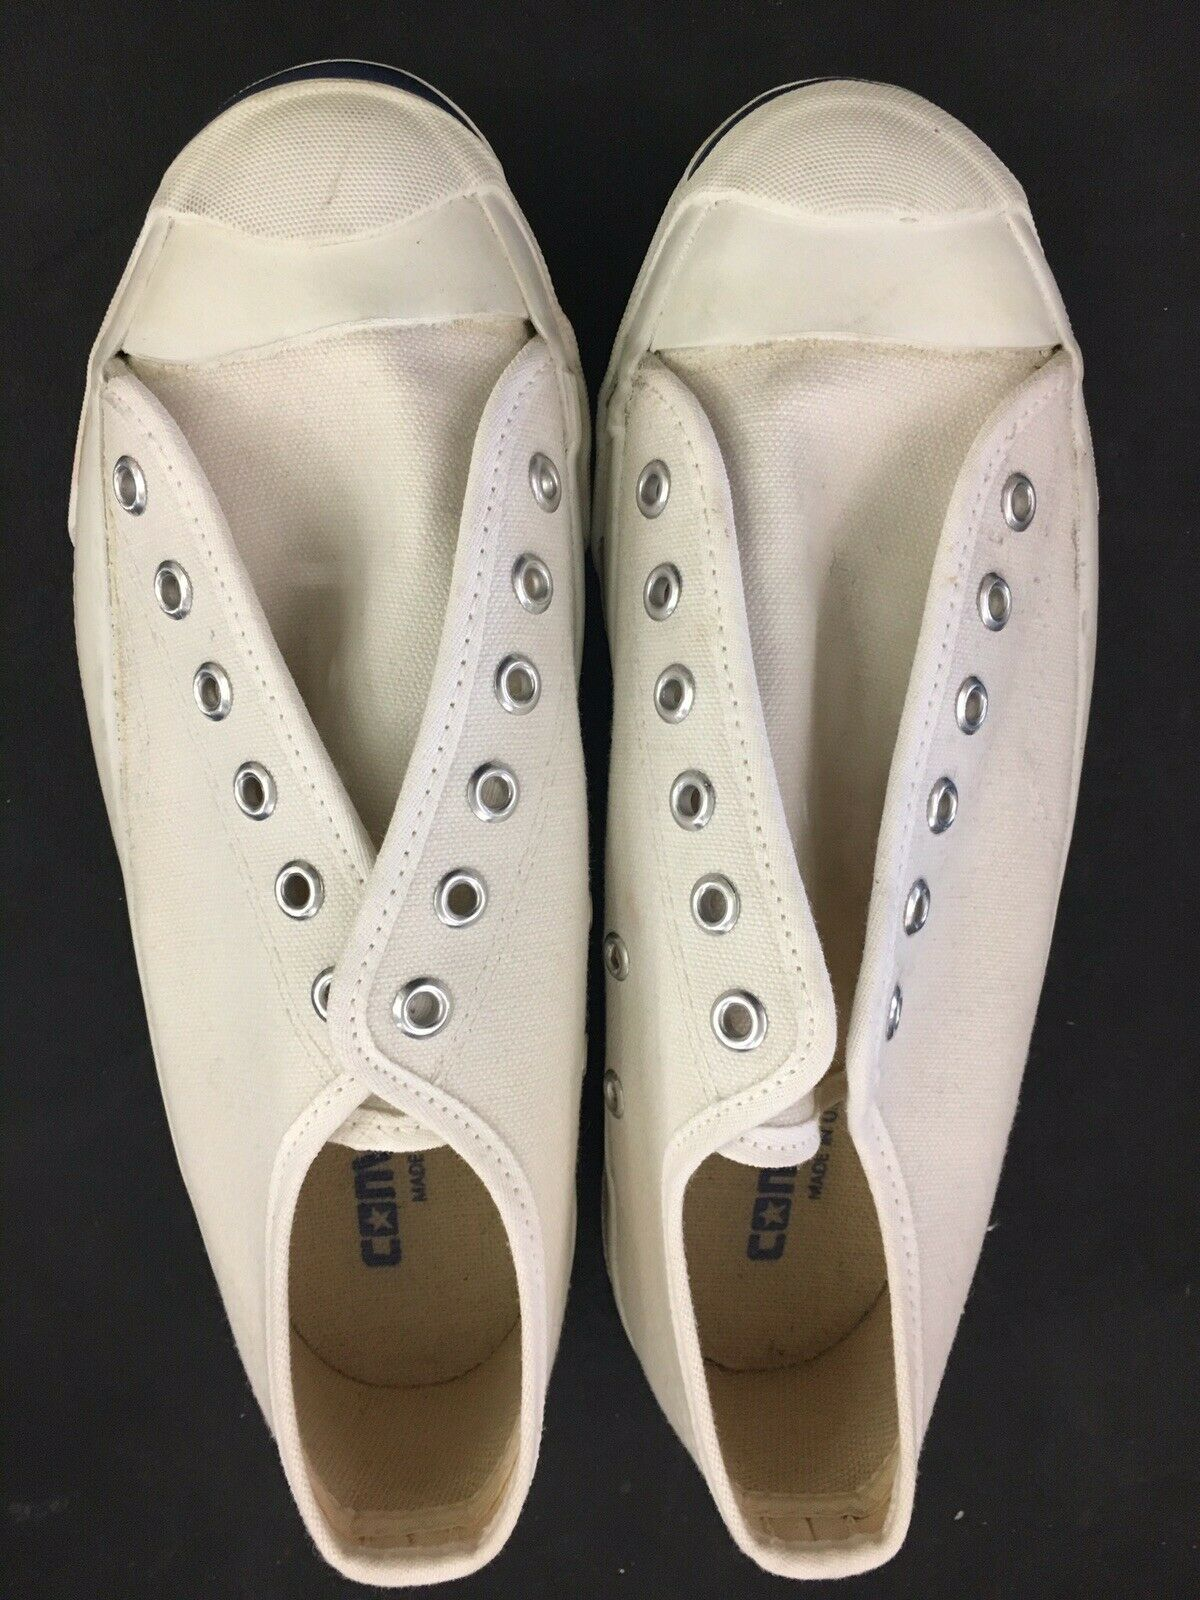 Converse Jack Purcell Low Blanc Toile Homme 5.5 made in U.S.A. 80 S